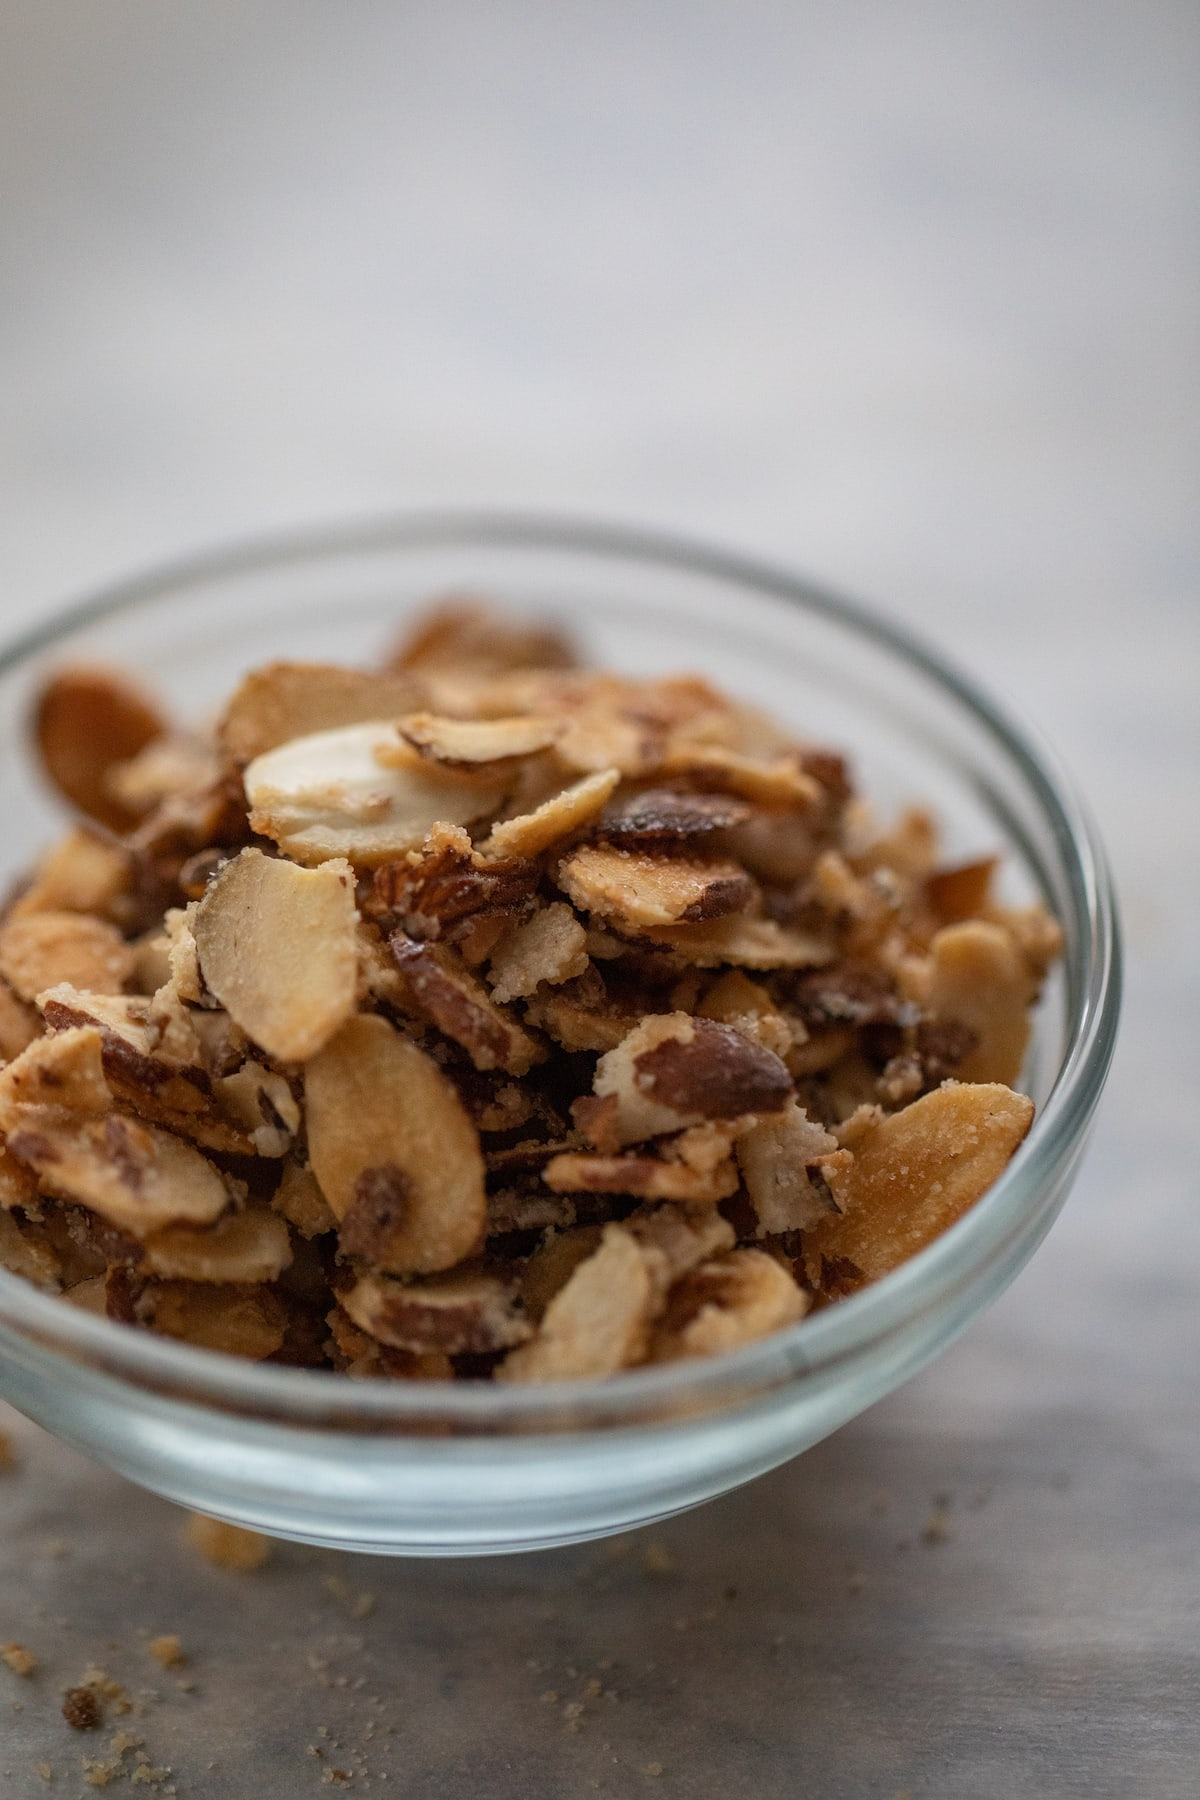 candied almonds in a bowl